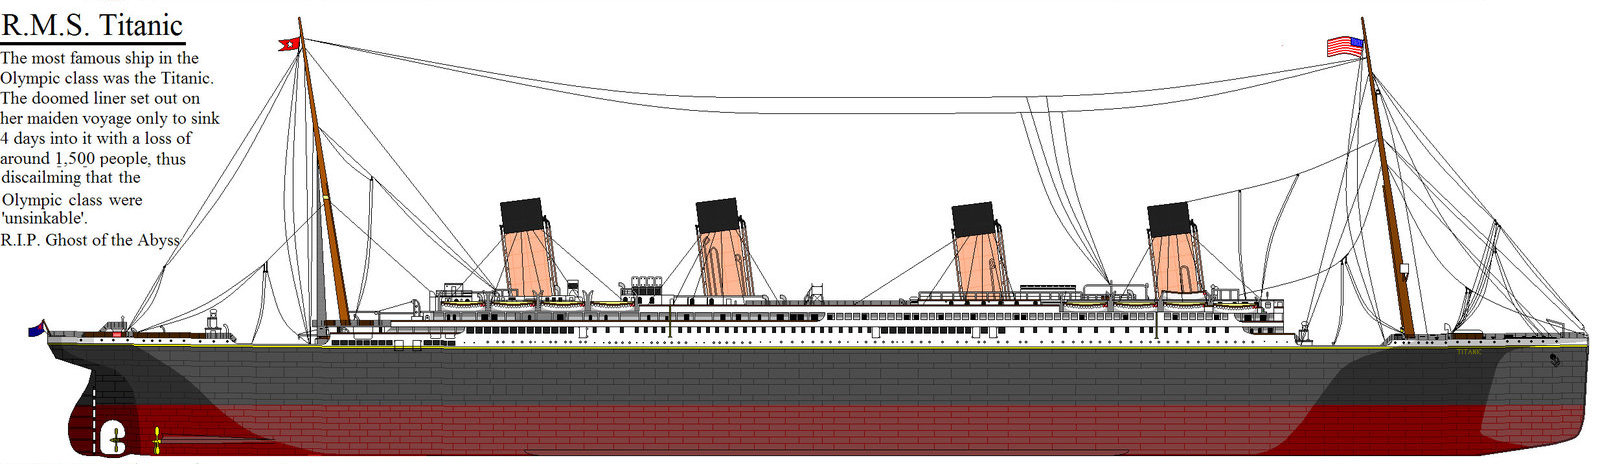 Drawn titanic side view TitanicSideDraw Uncategorized Ocean Liner Blogger